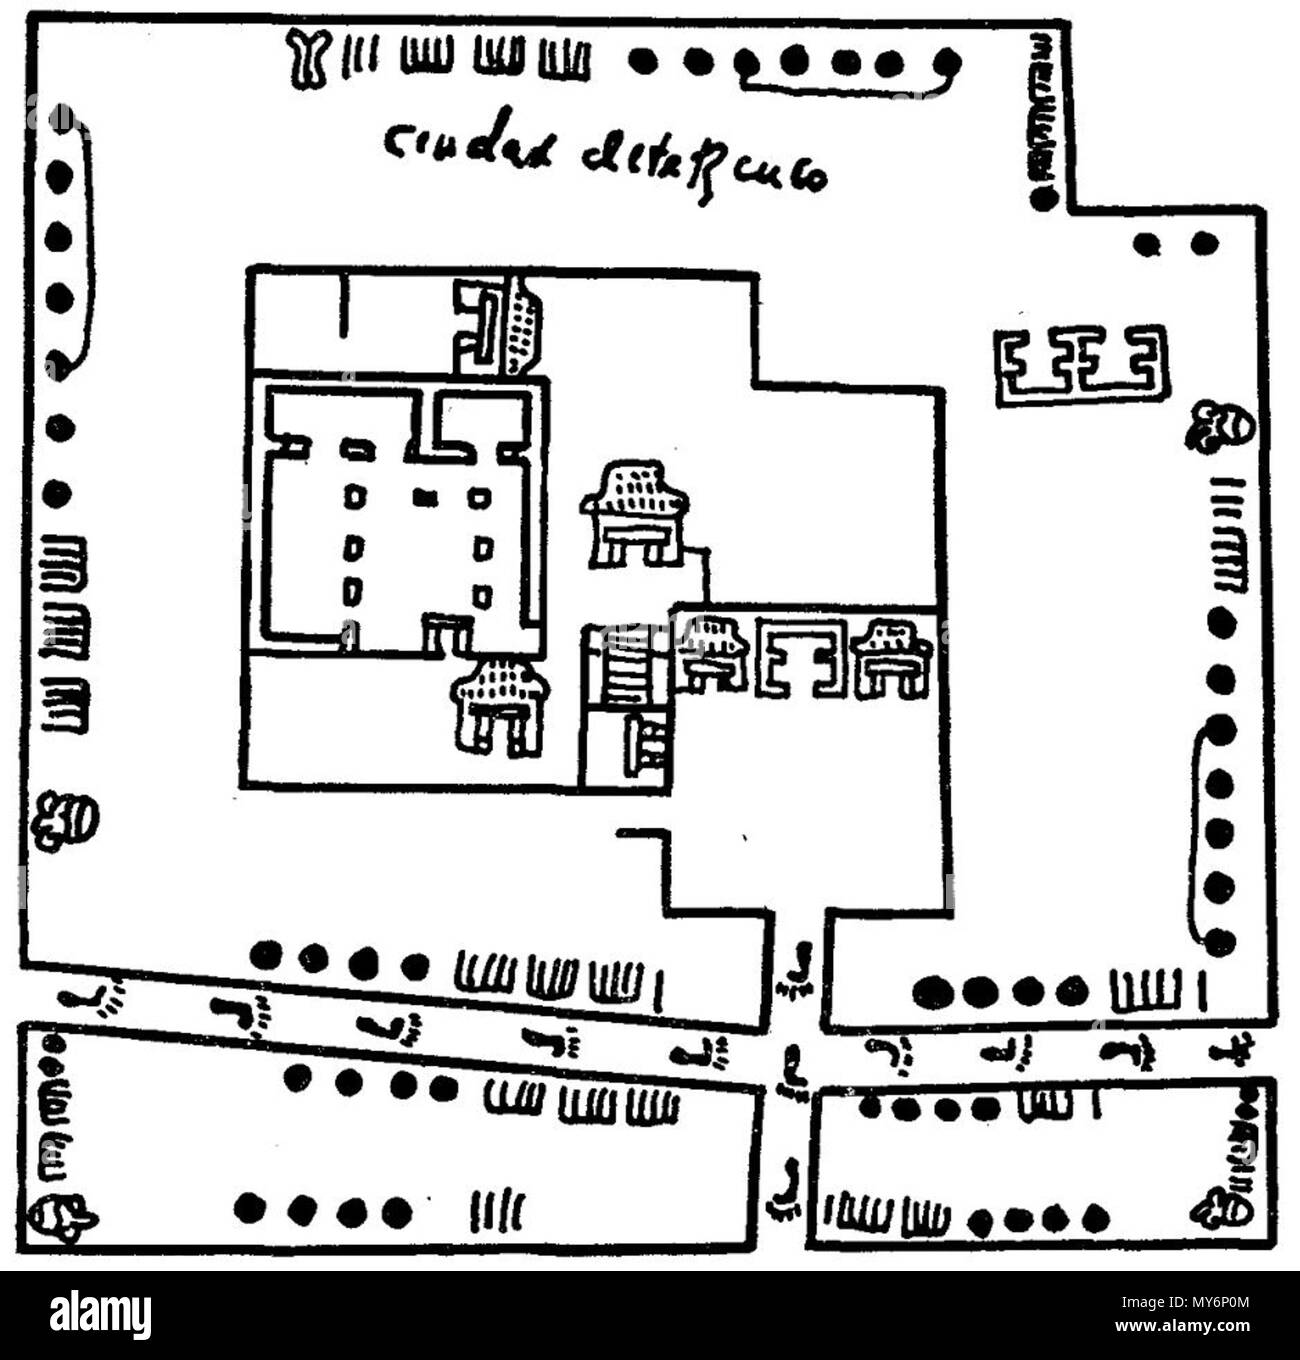 . English: Depiction of Texcoco city showing its dimensions by the Aztec Metric System detail in the Codex Humboldt Fragment VI . between 1500 and 1600. Unknown 517 Texcoco Aztec Metric System Codex Humboldt black and white detail Fragment VI - Stock Image